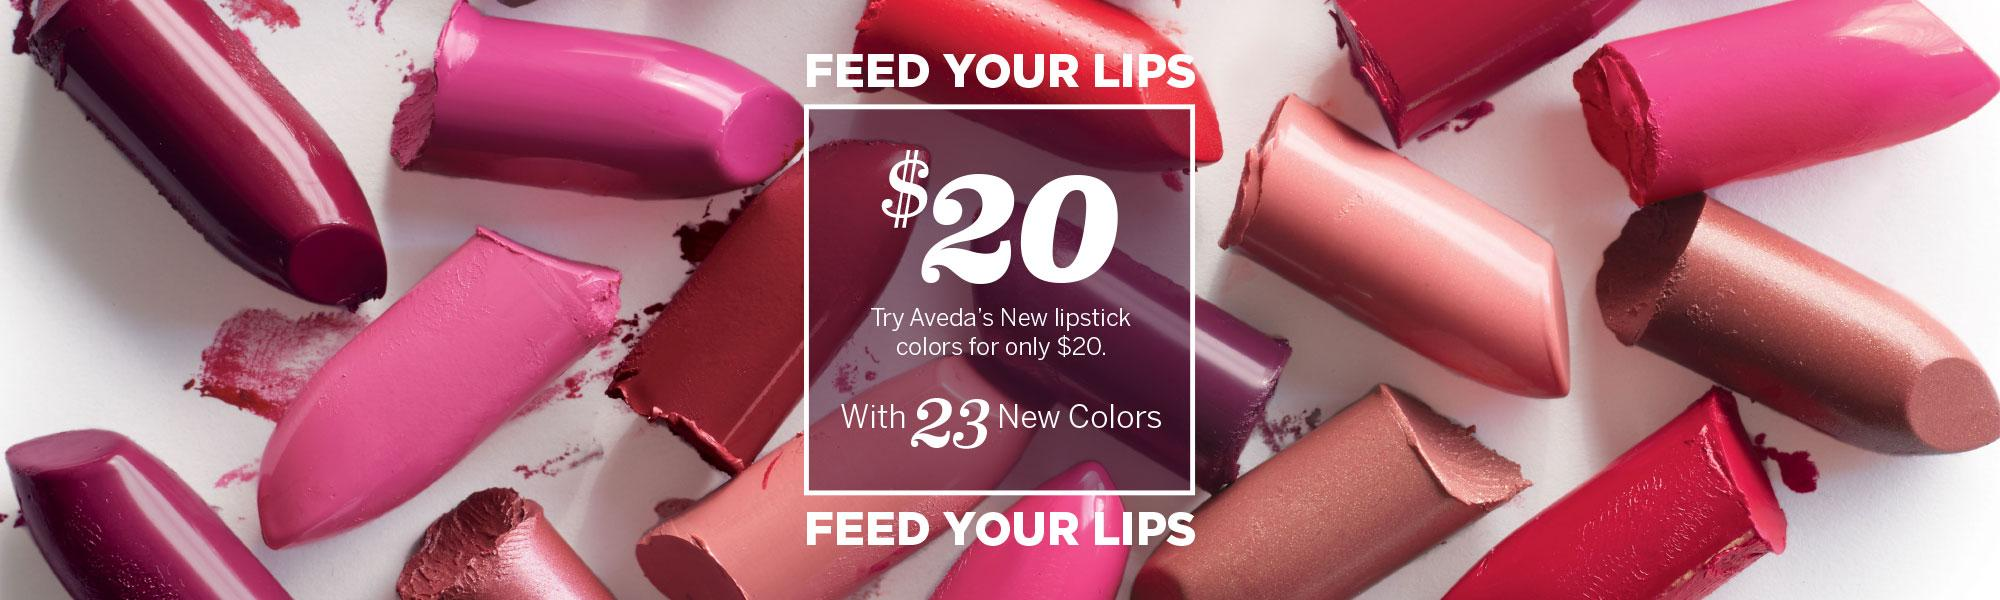 Aveda Lipsticks $20, Feed Your Lips